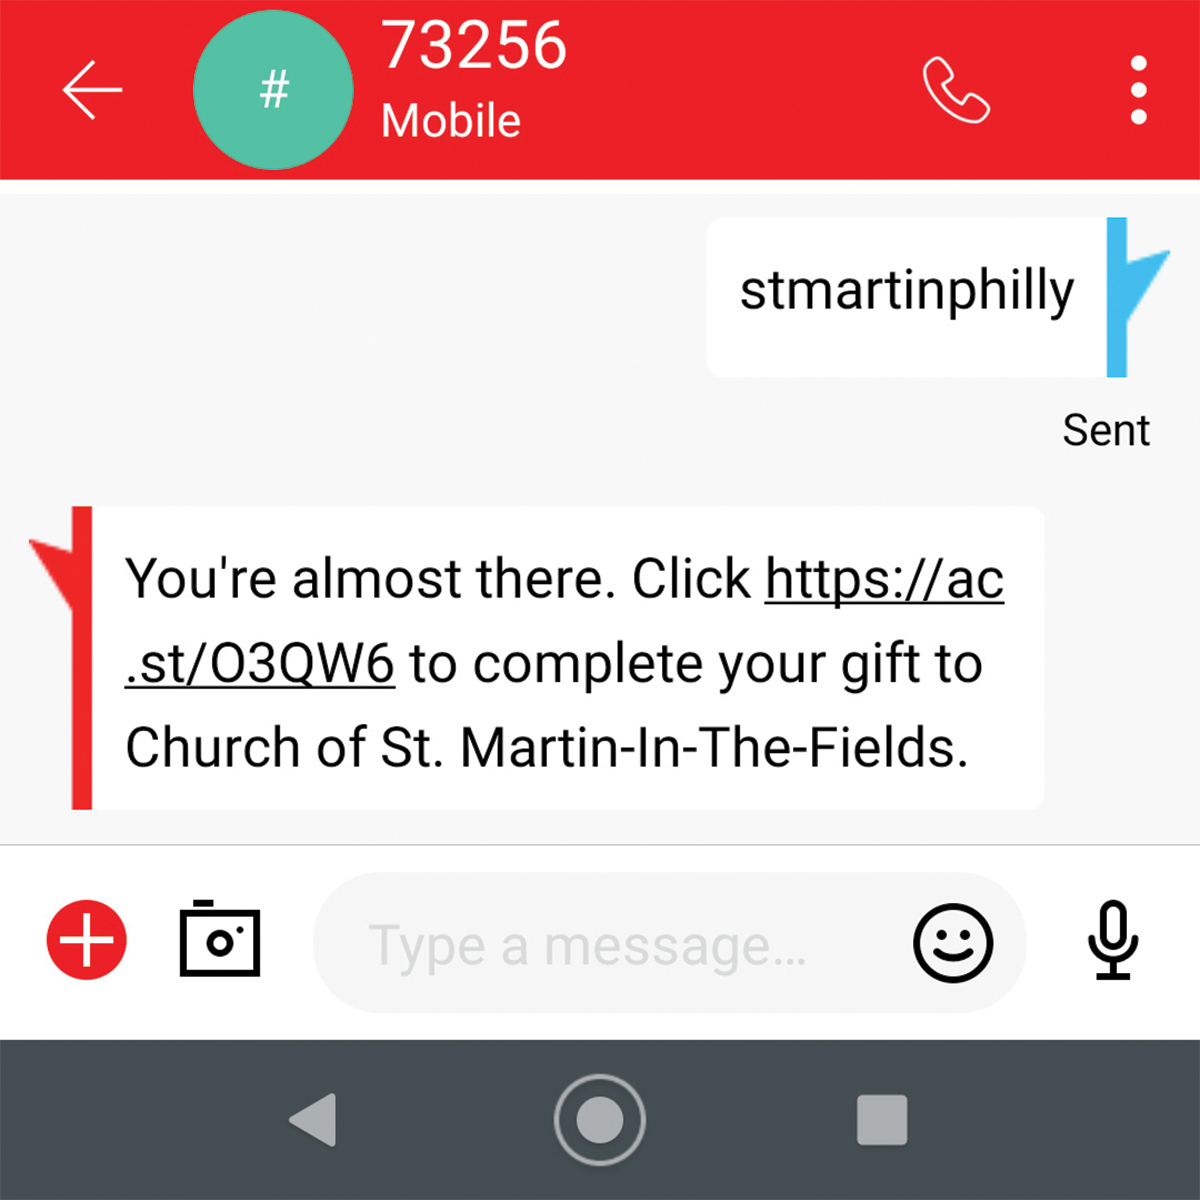 text-stmartinphilly-to-73256-1a_739